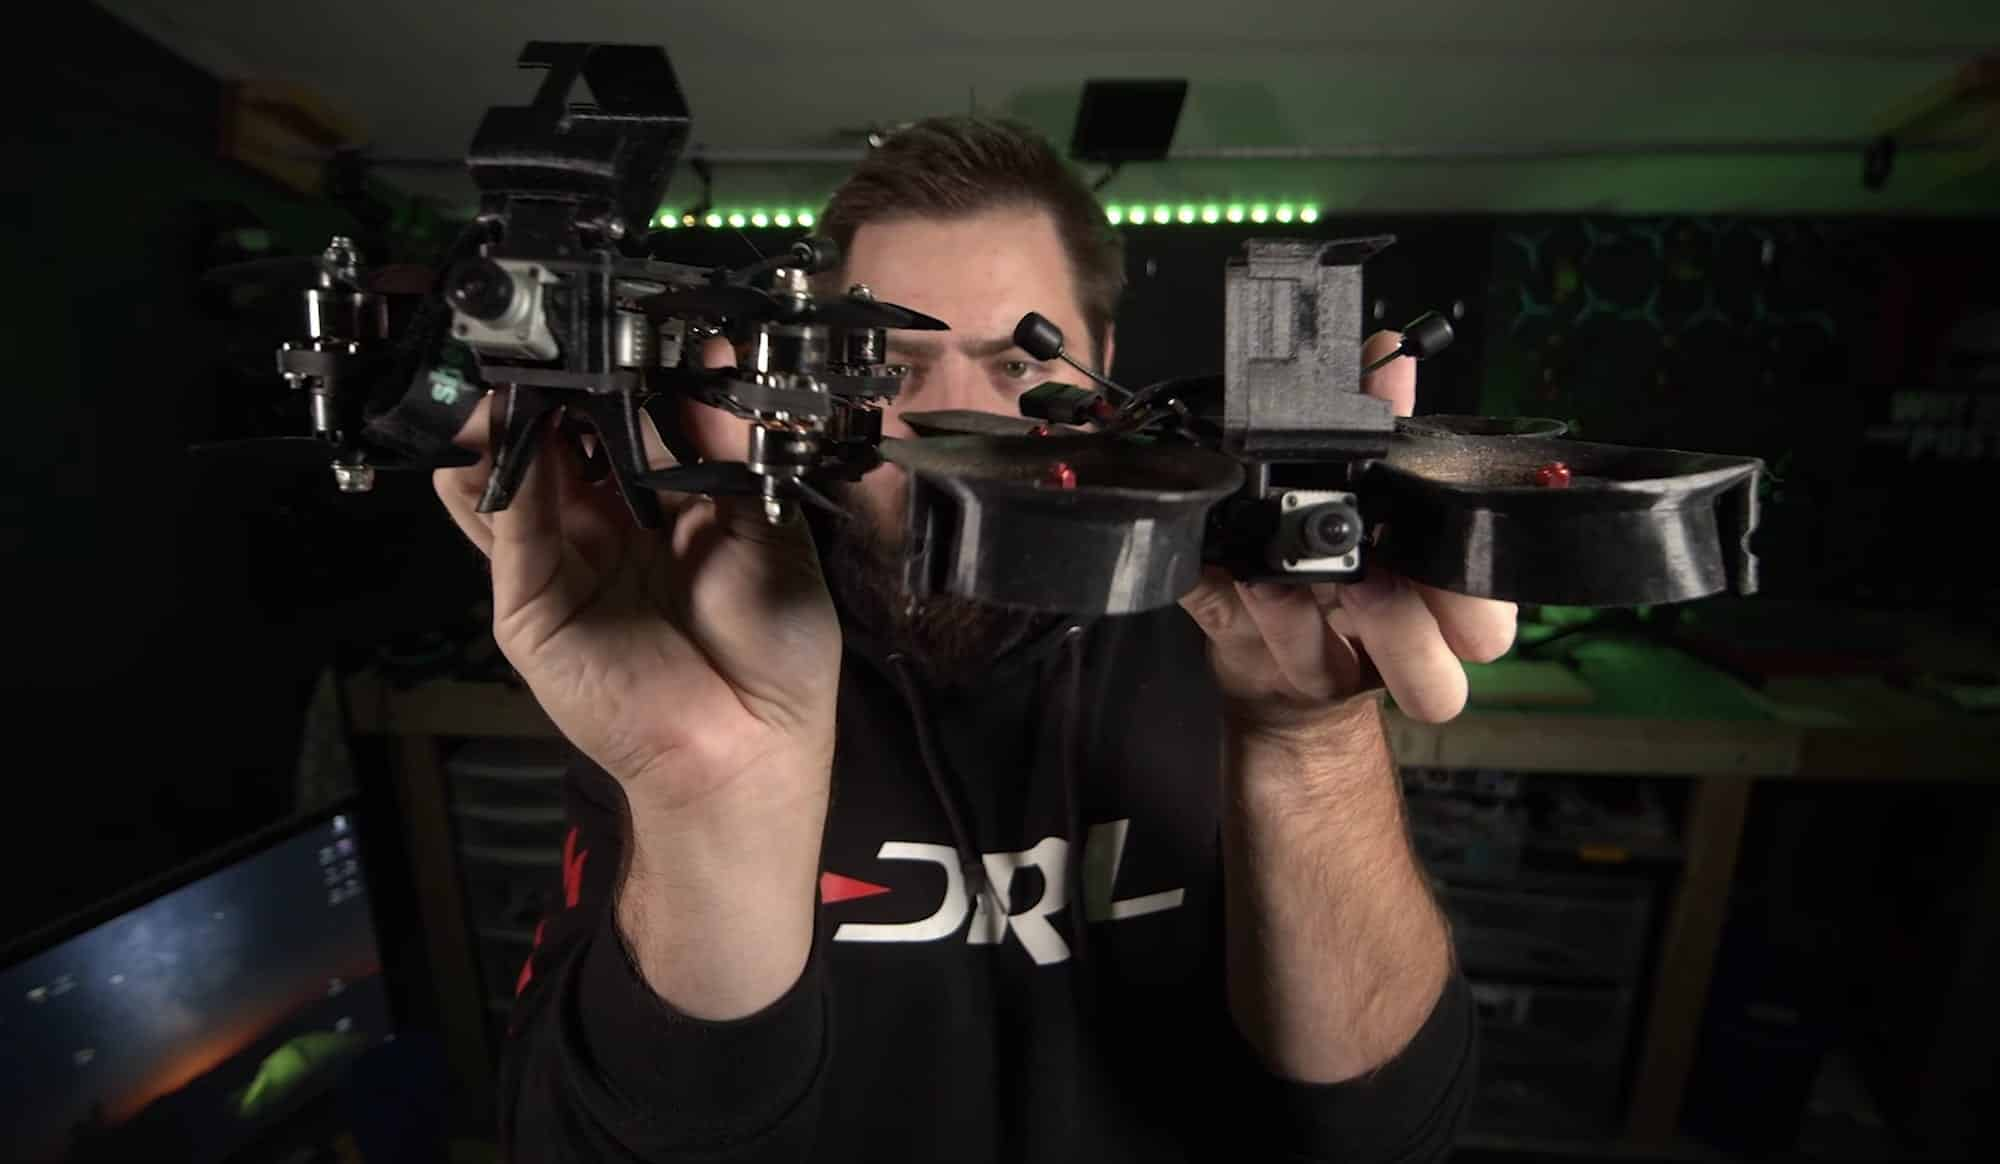 Nurk FPV explains what FPV drone to use for filming